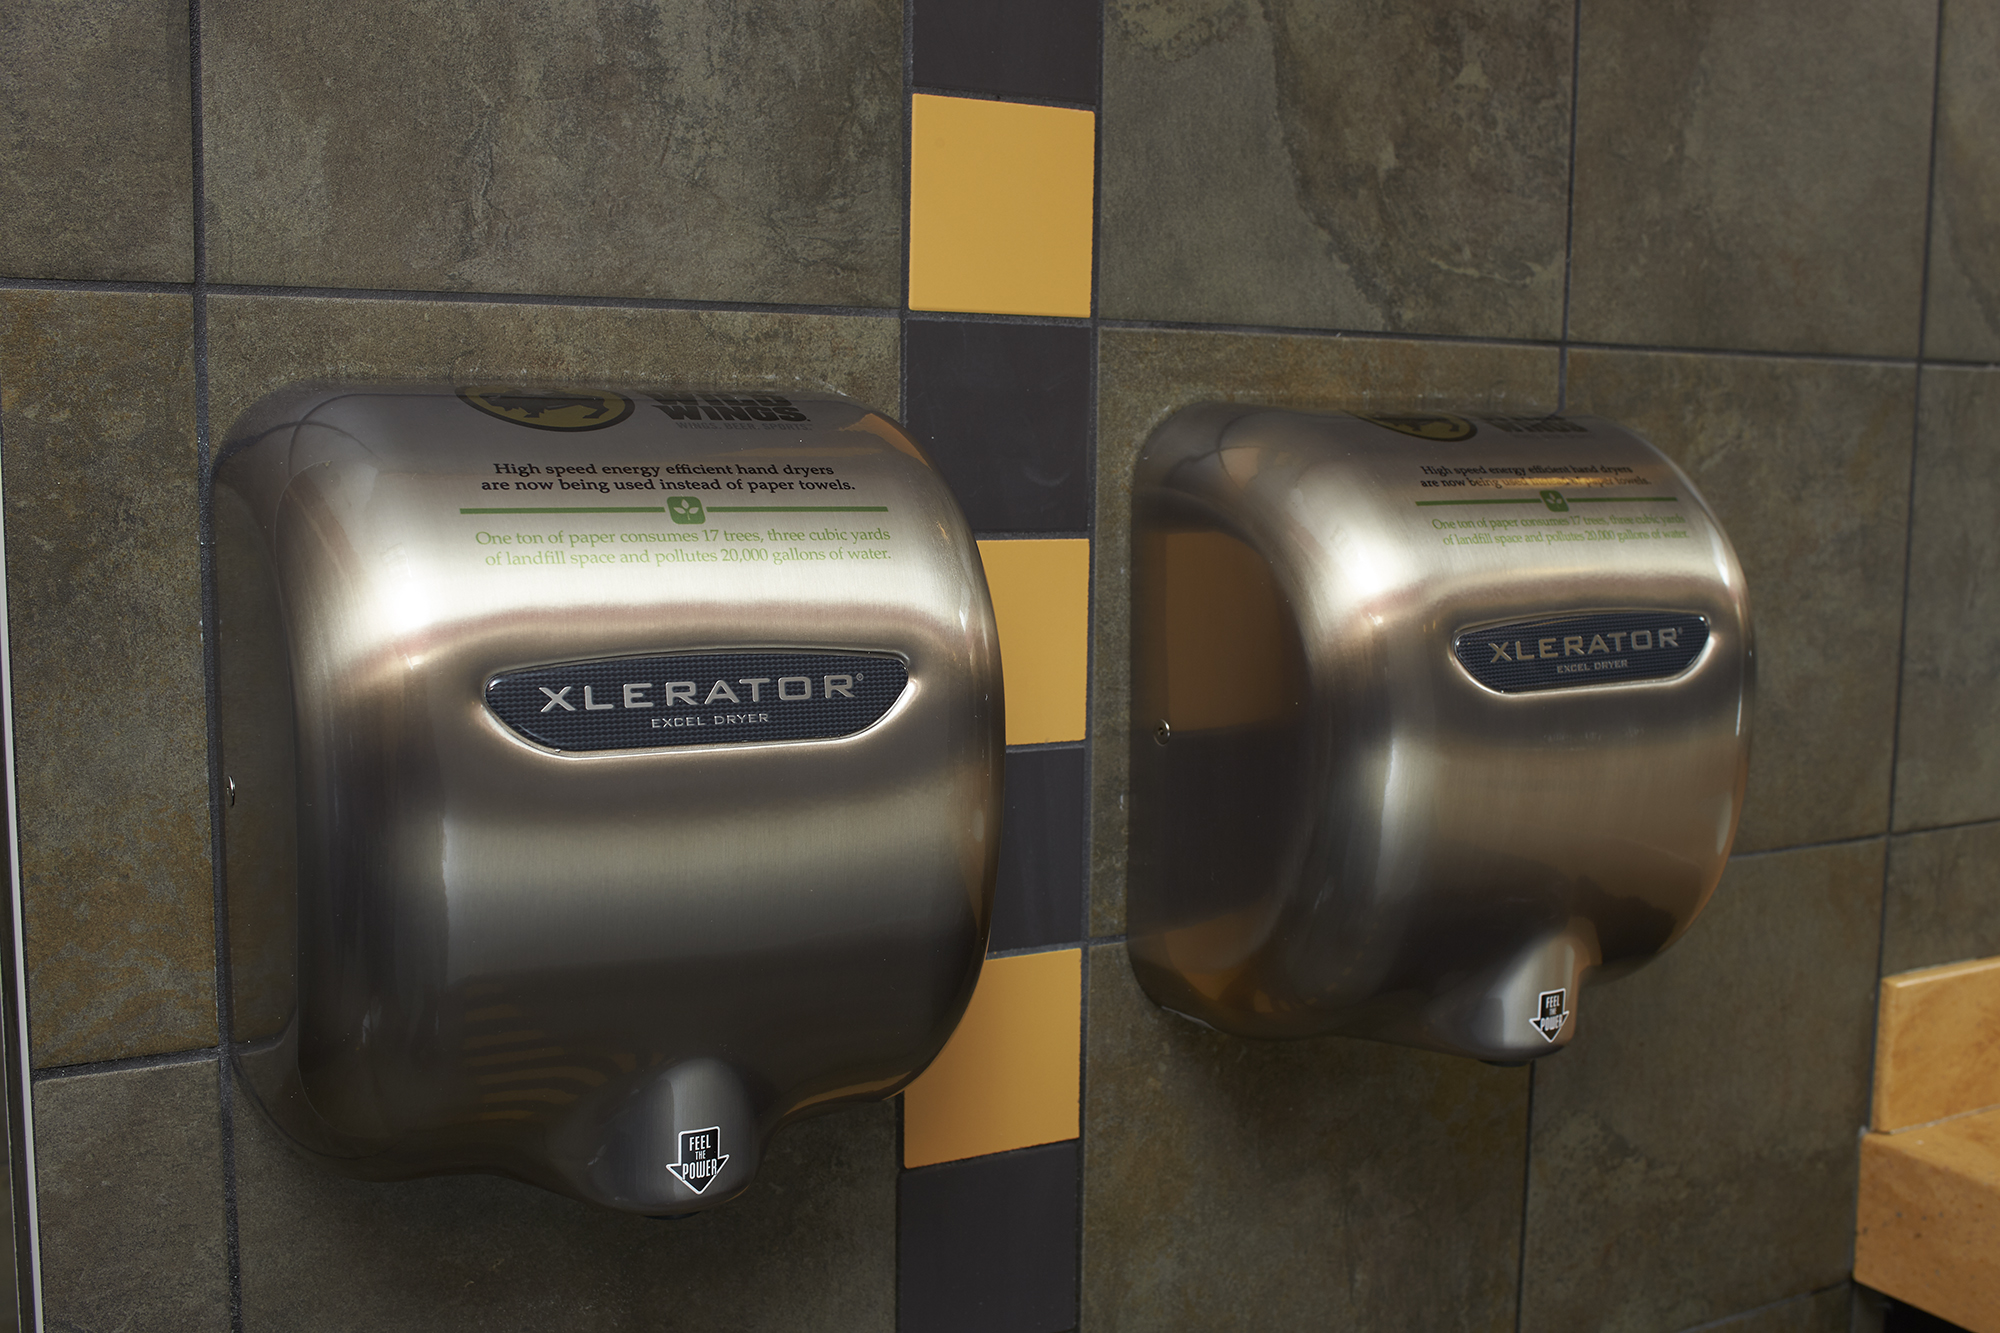 excels product lines feature xlerator hand dryer - Excel Hand Dryer